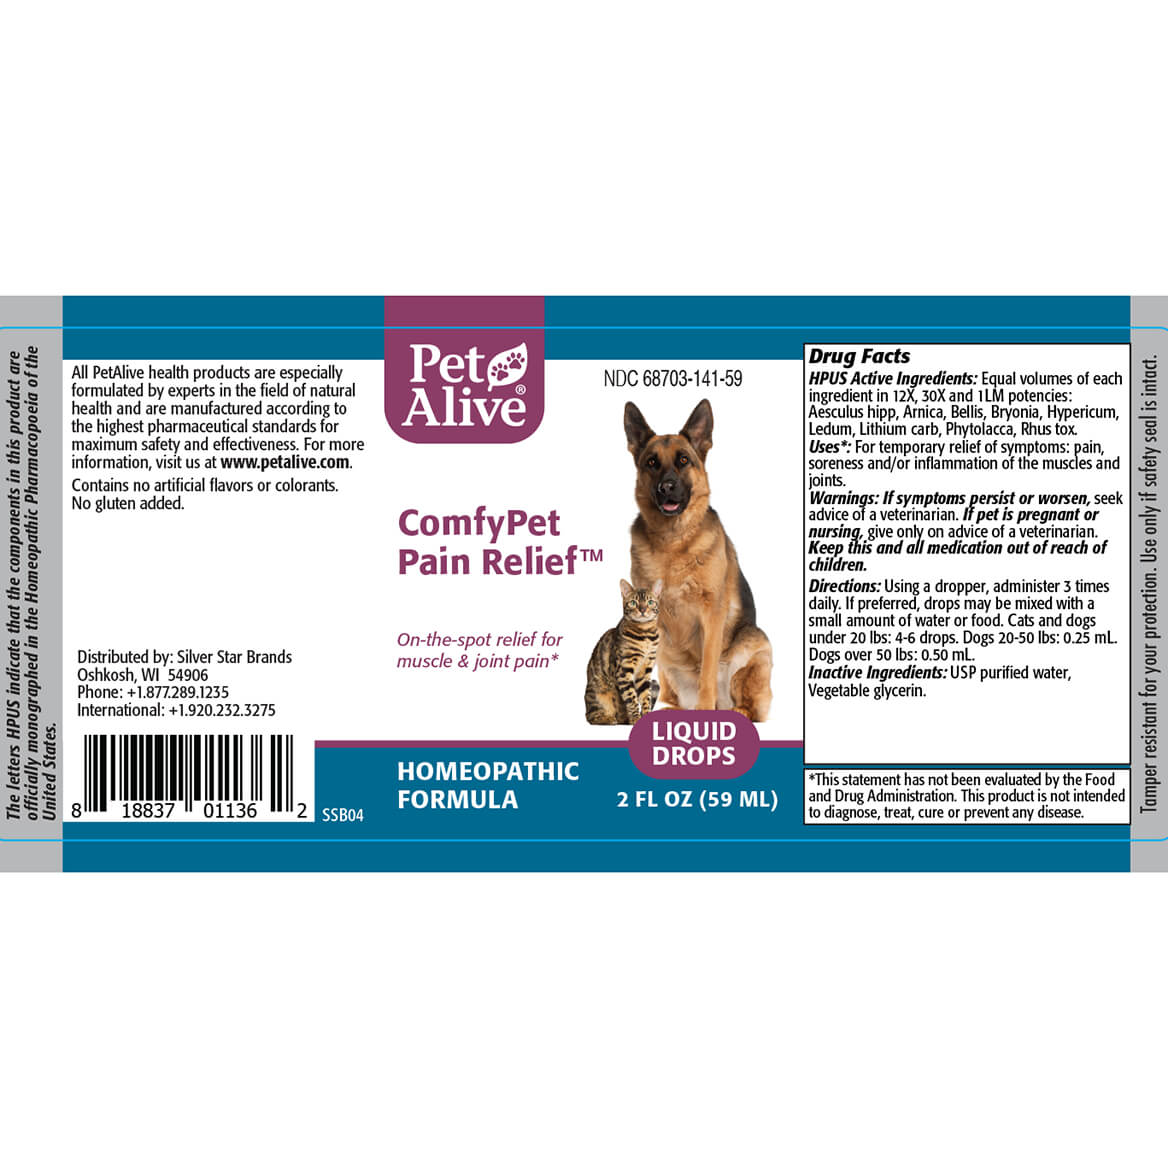 ComfyPet Pain Relief™ for Minor Aches & Pain-352062